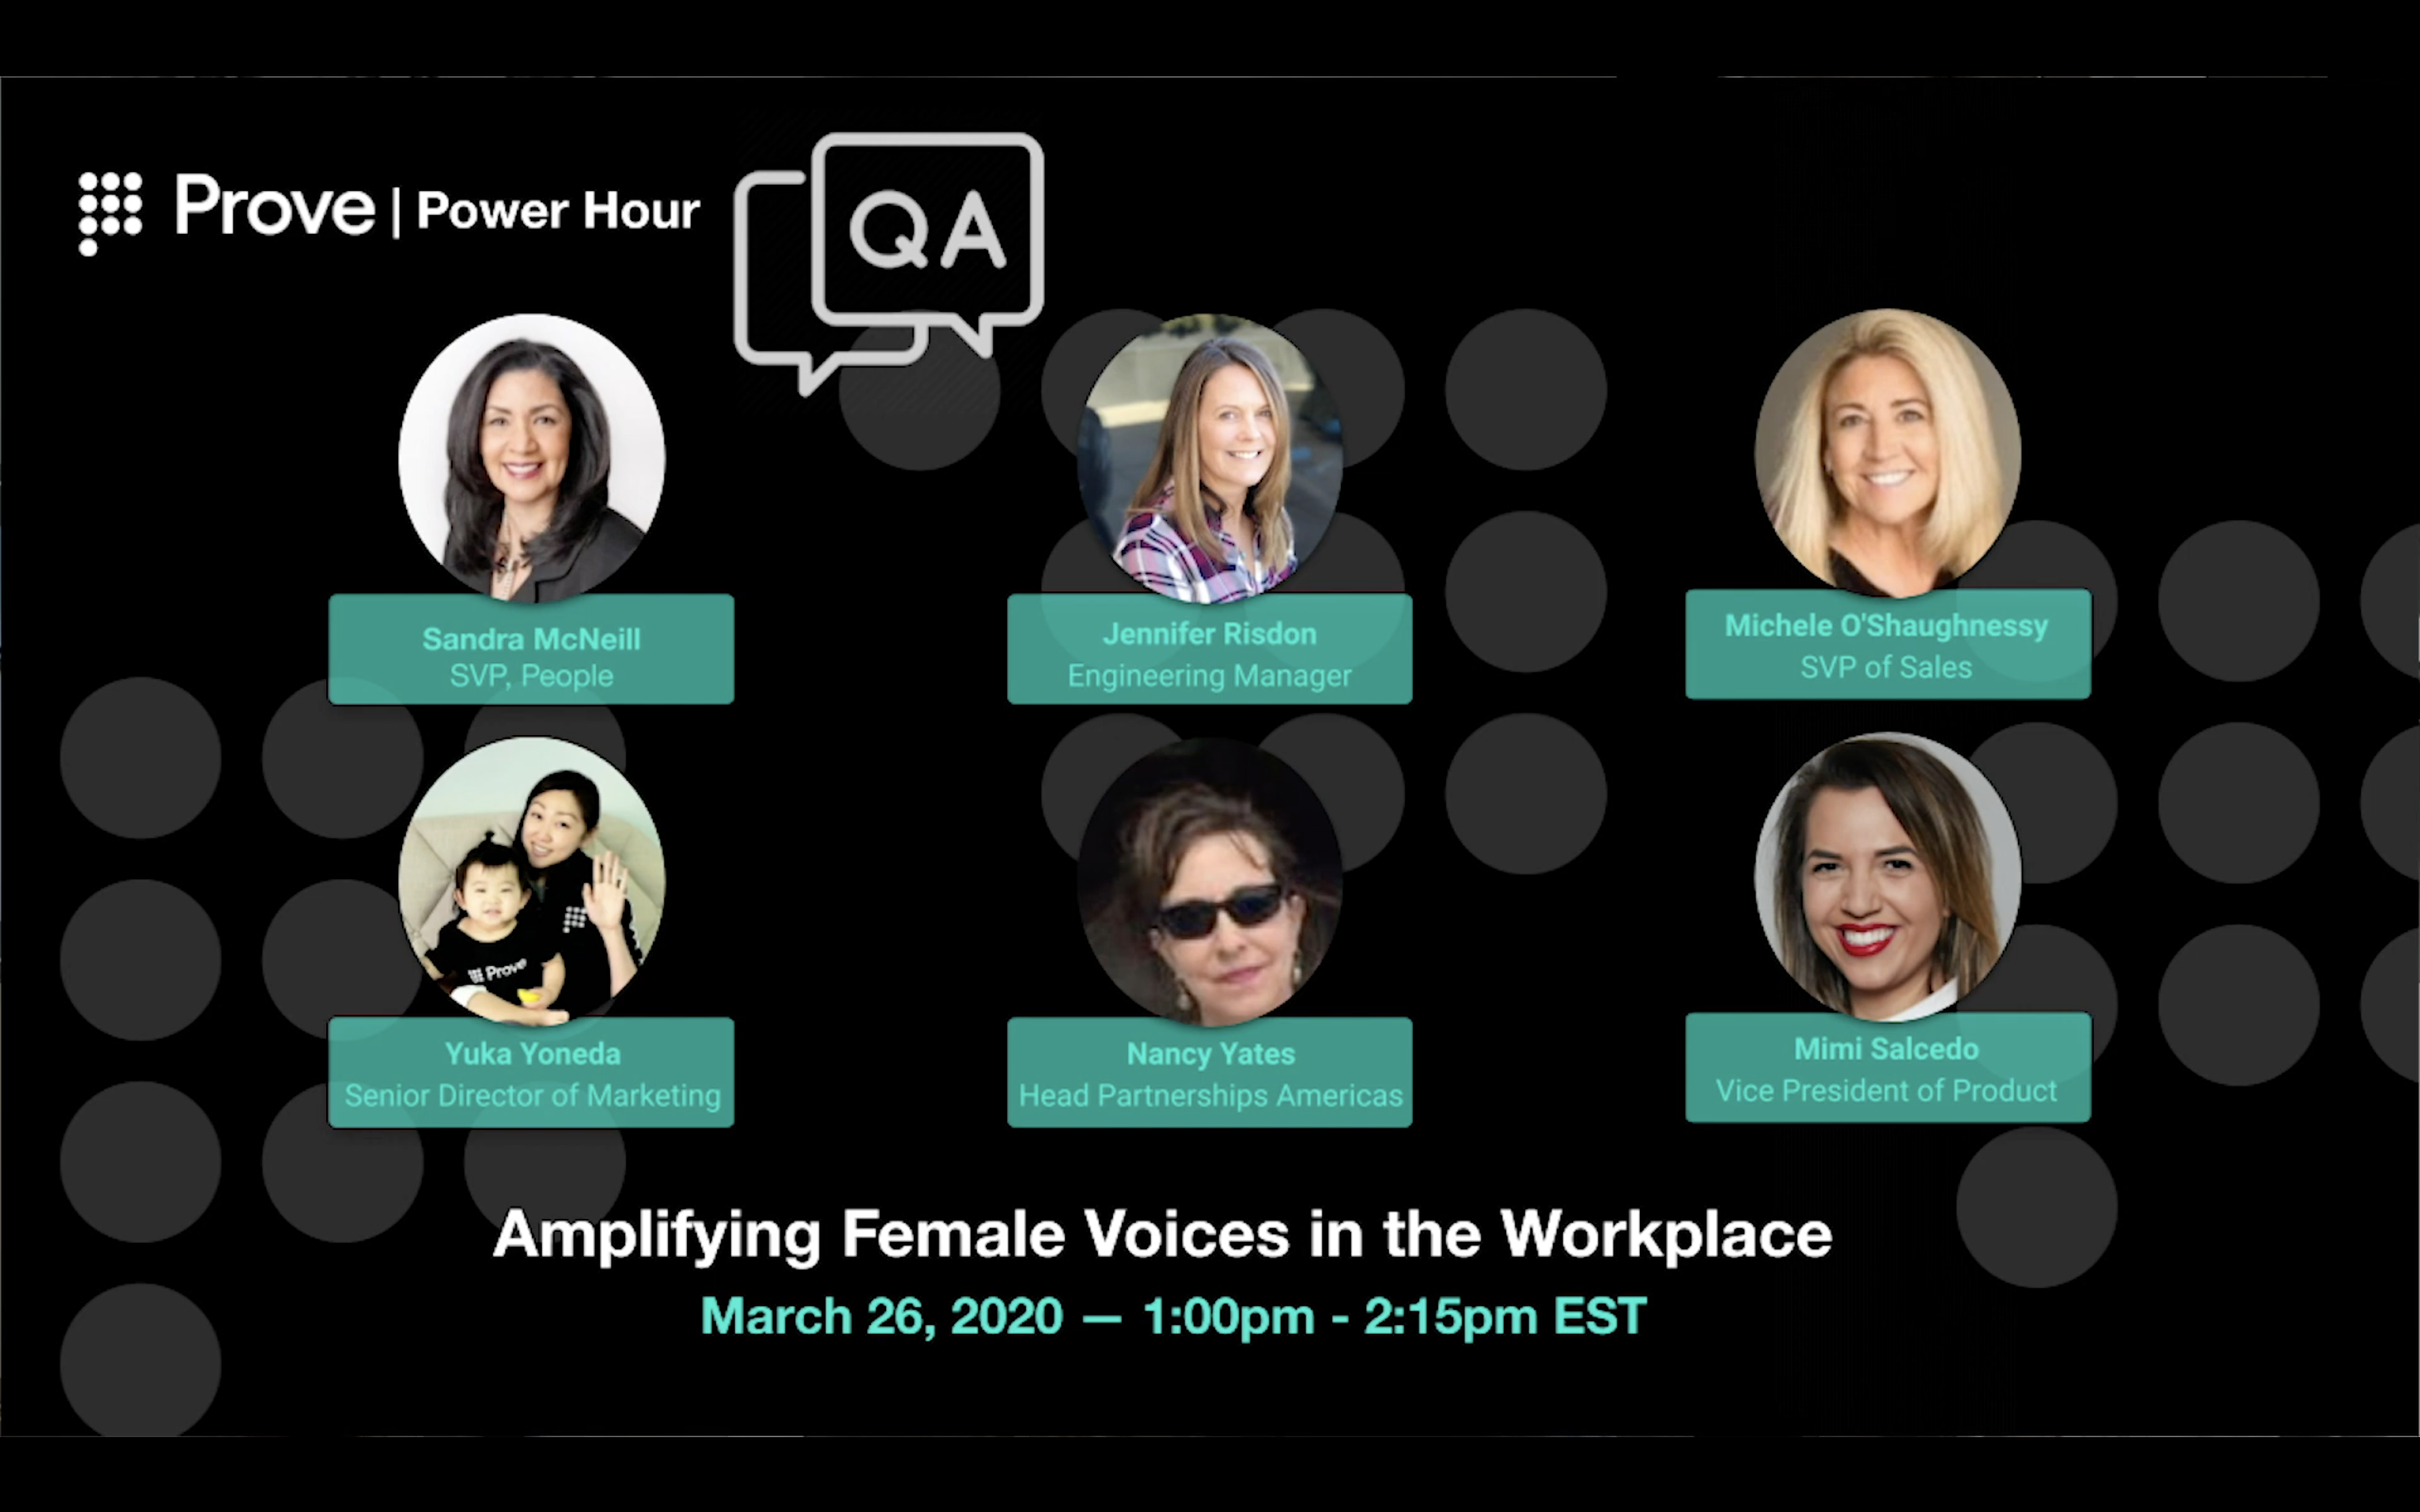 Prove Power Hour Amplifying Female Voices in the Workplace 3/26/2021